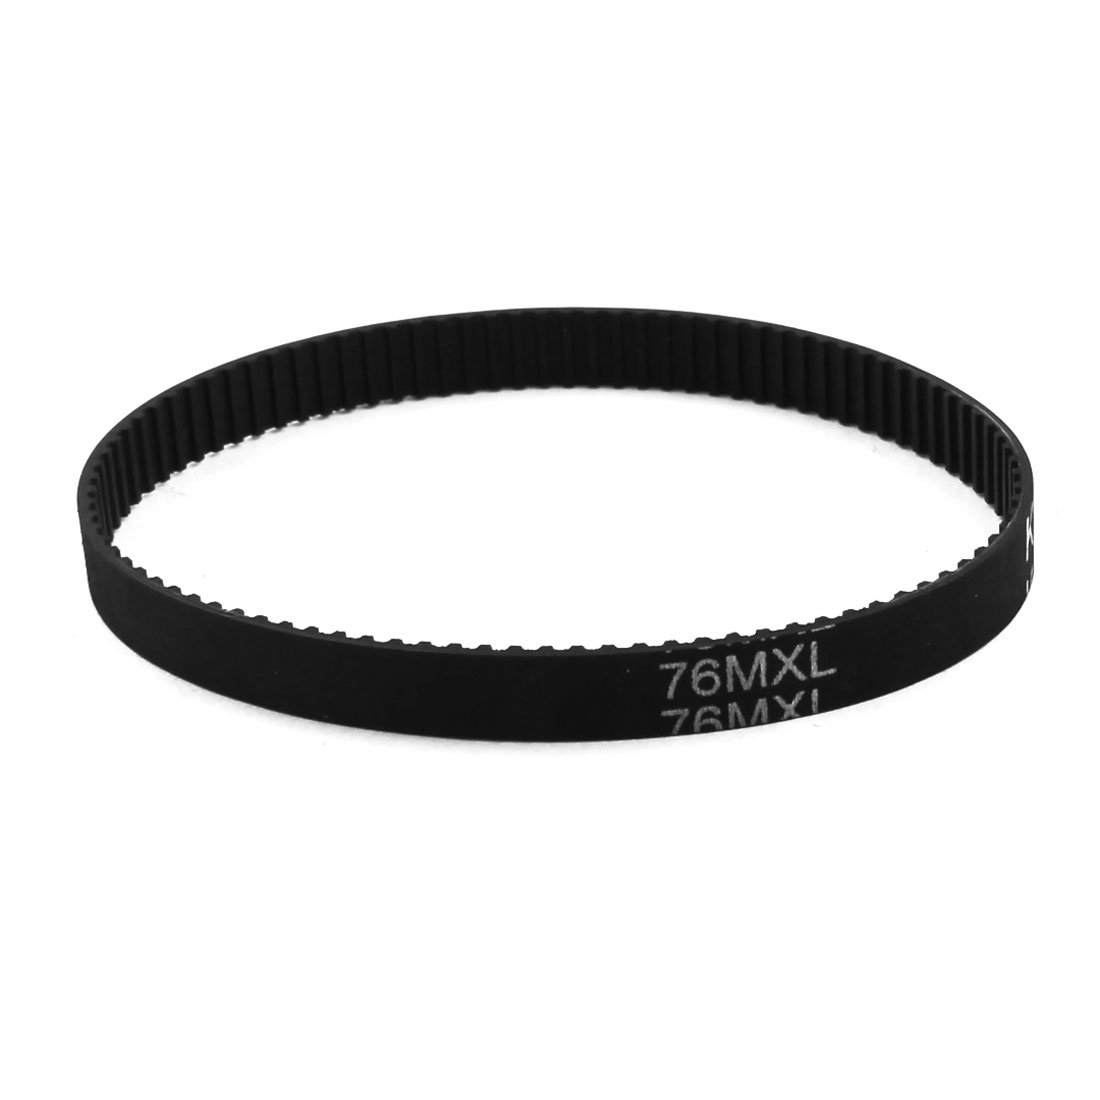 76MXL025 95-Tooth 6.4mm Width Black Stepper Motor 3D Printer Groove Synchronous Timing Belt 7.6""